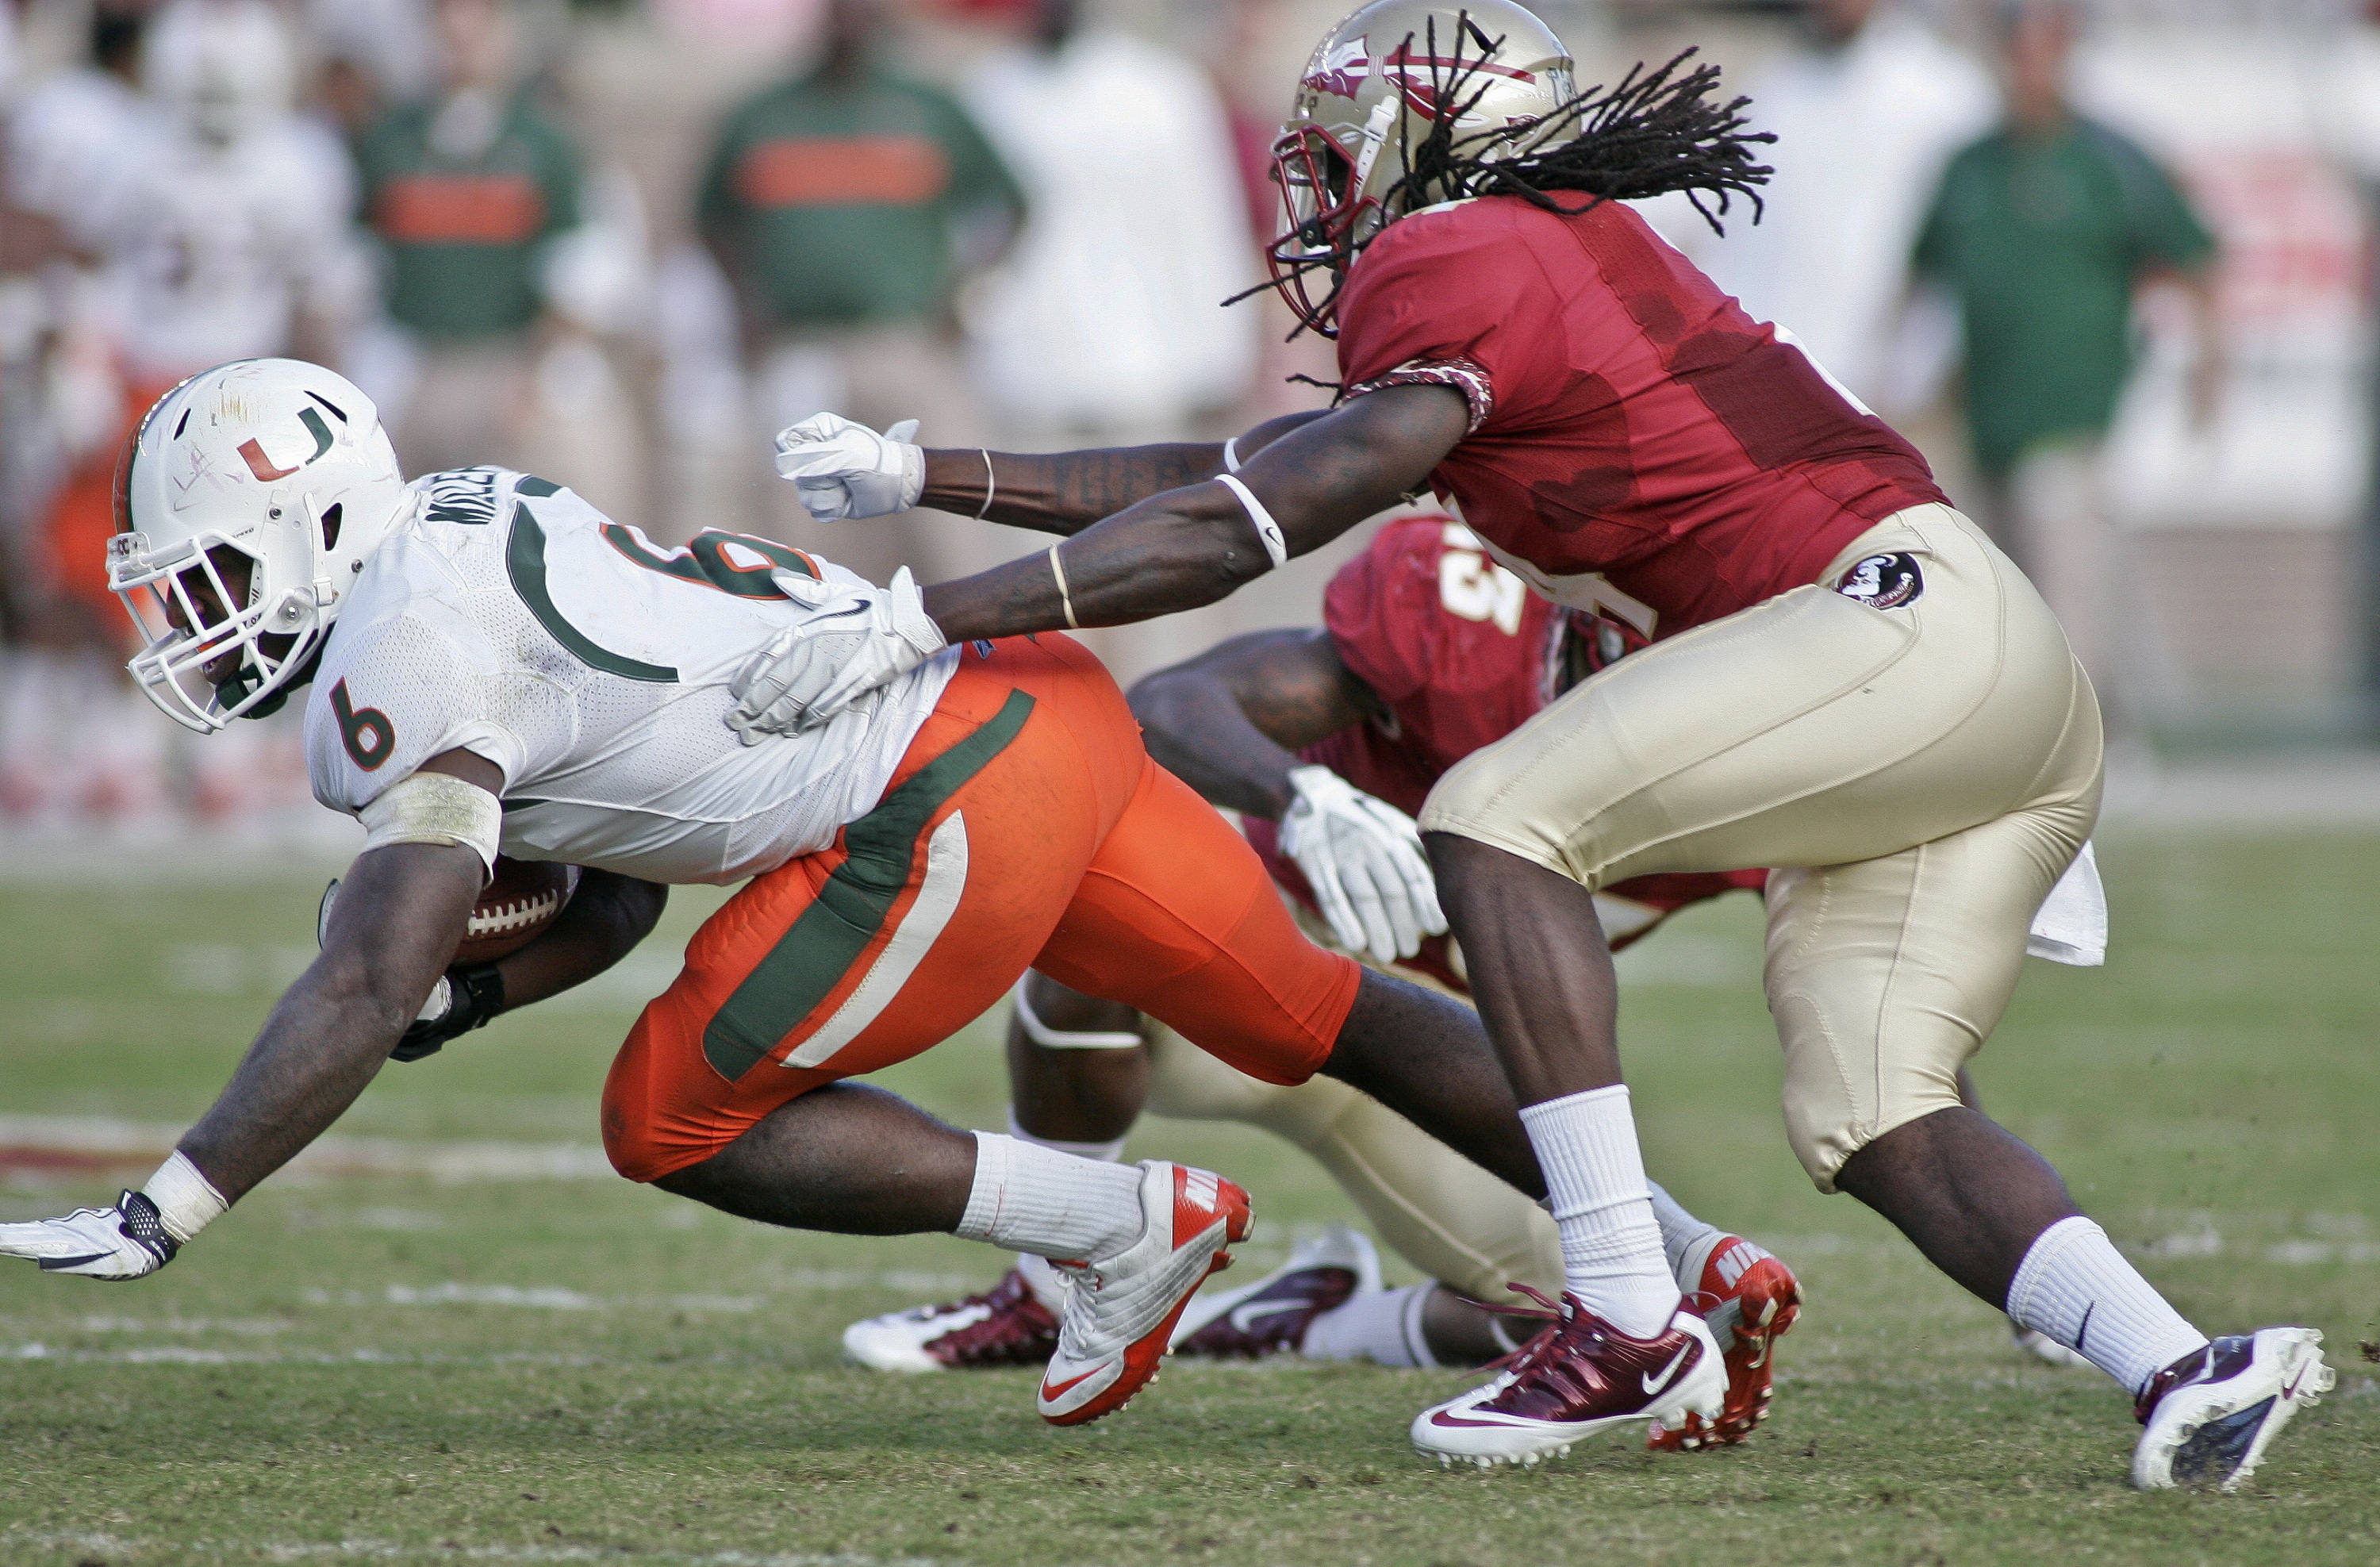 Miami running back Lamar Miller (6) dives for a first down as Florida State safety Terrance Parks (4) pursues during the second quarter of an NCAA college football game on Saturday, Nov. 12, 2011, in Tallahassee, Fla. (AP Photo/Phil Sears)